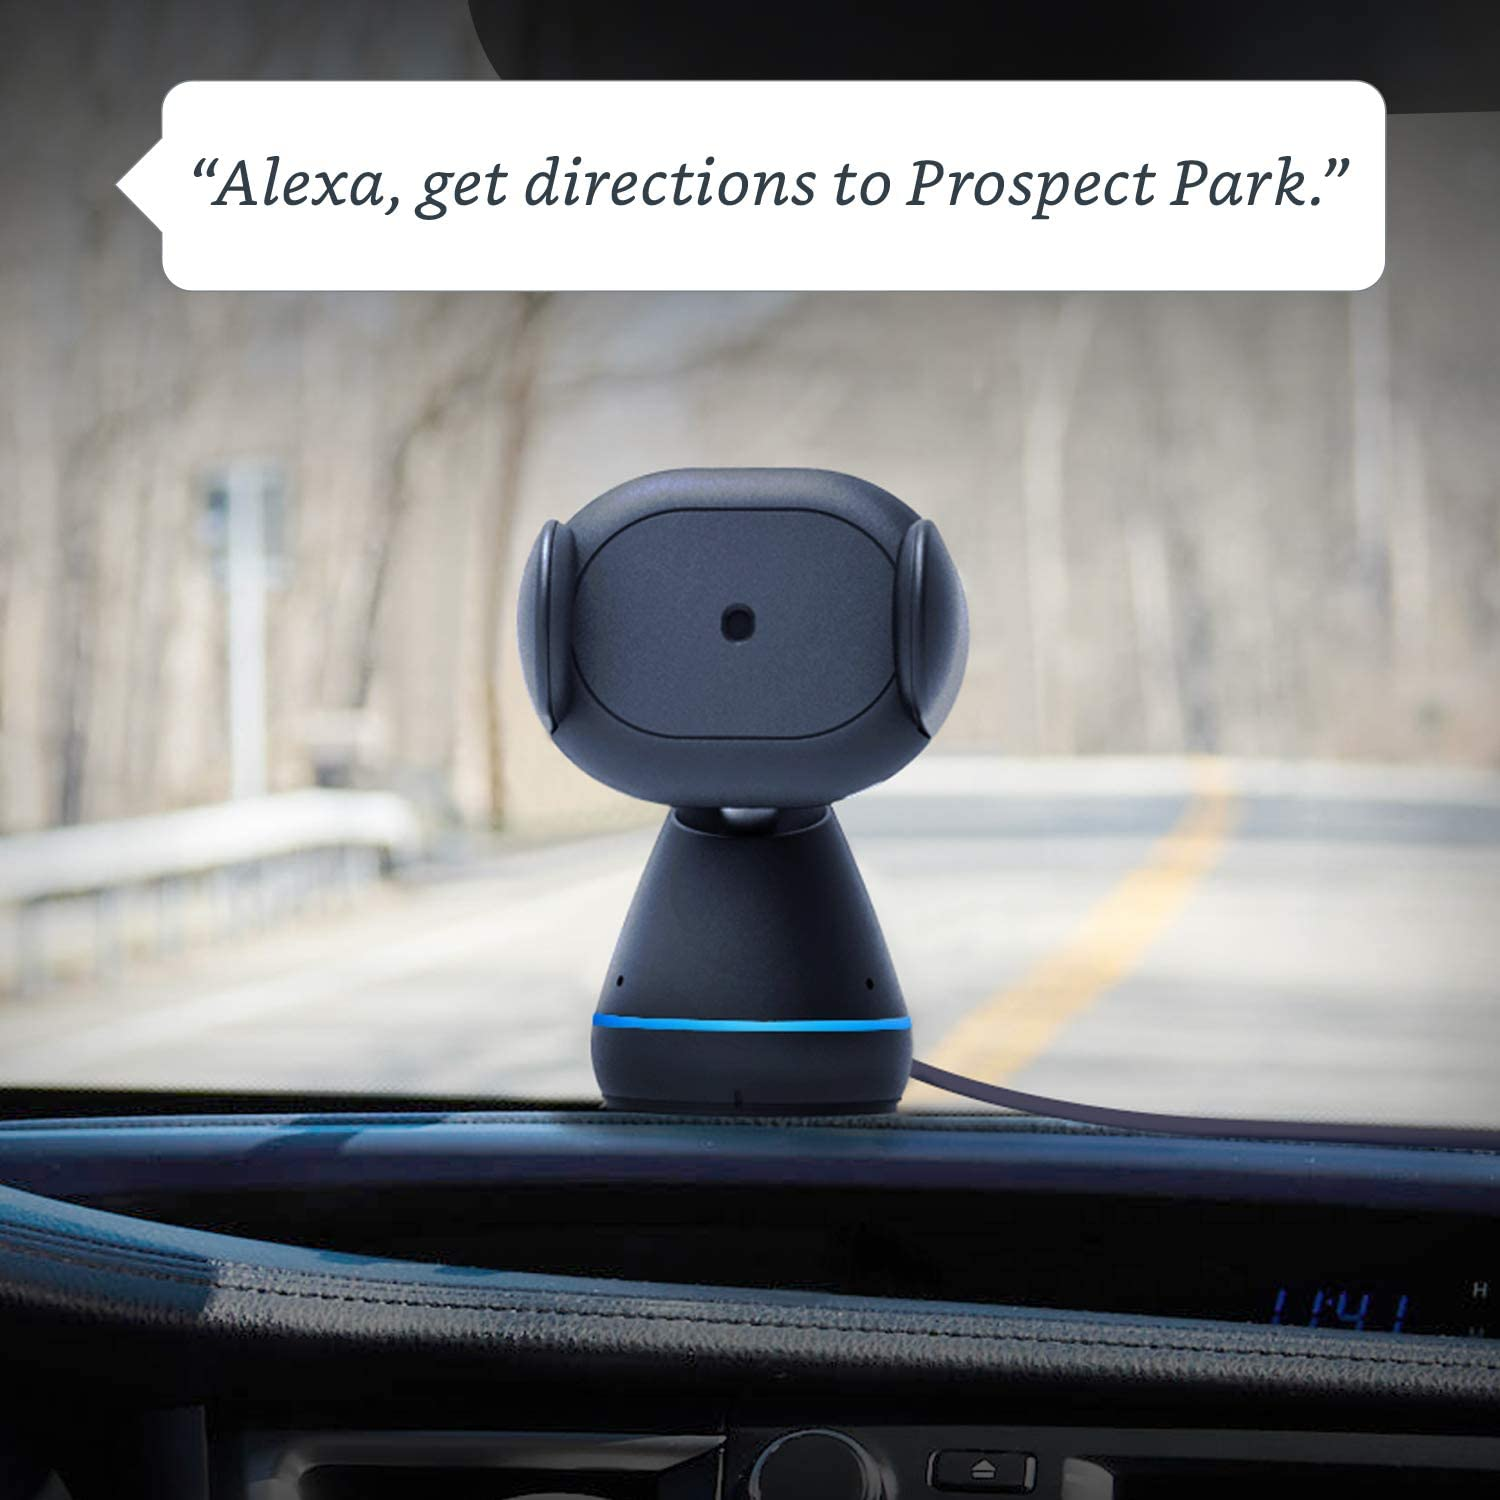 Car Mount Phone Holder with Alexa Built in